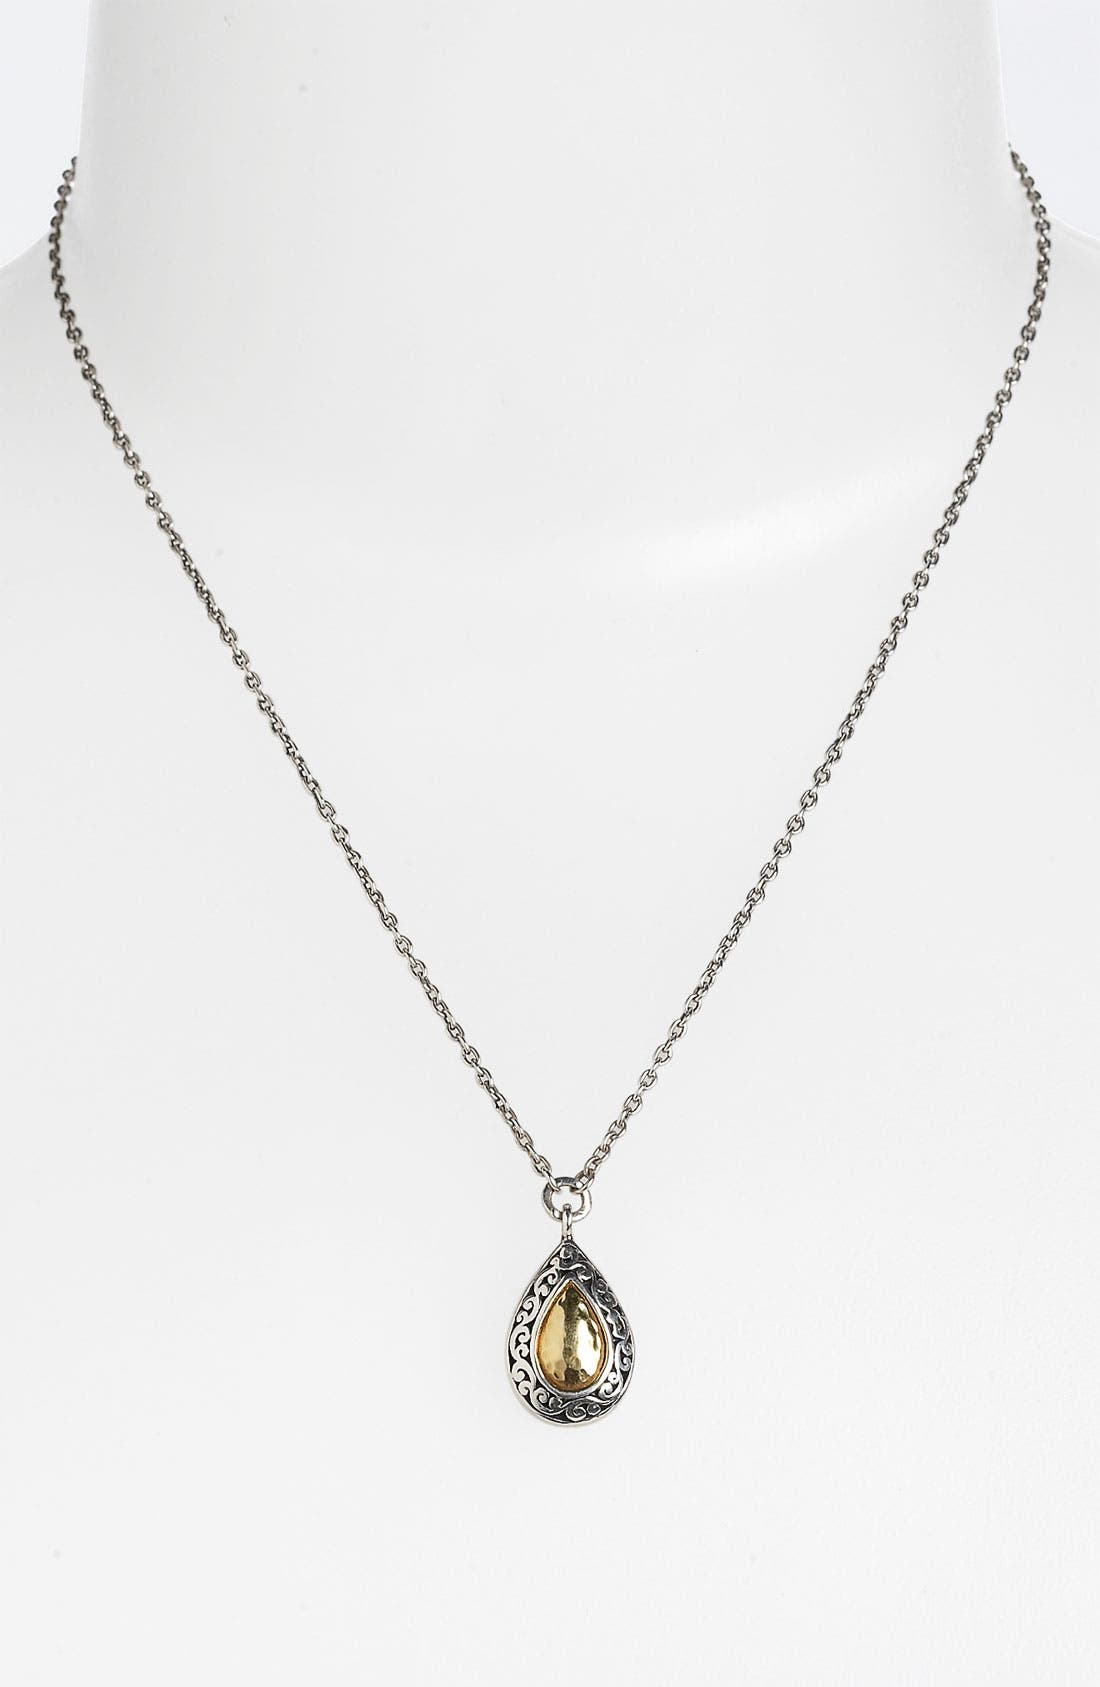 Main Image - Lois Hill 'Marquise' Small Teardrop Pendant Necklace